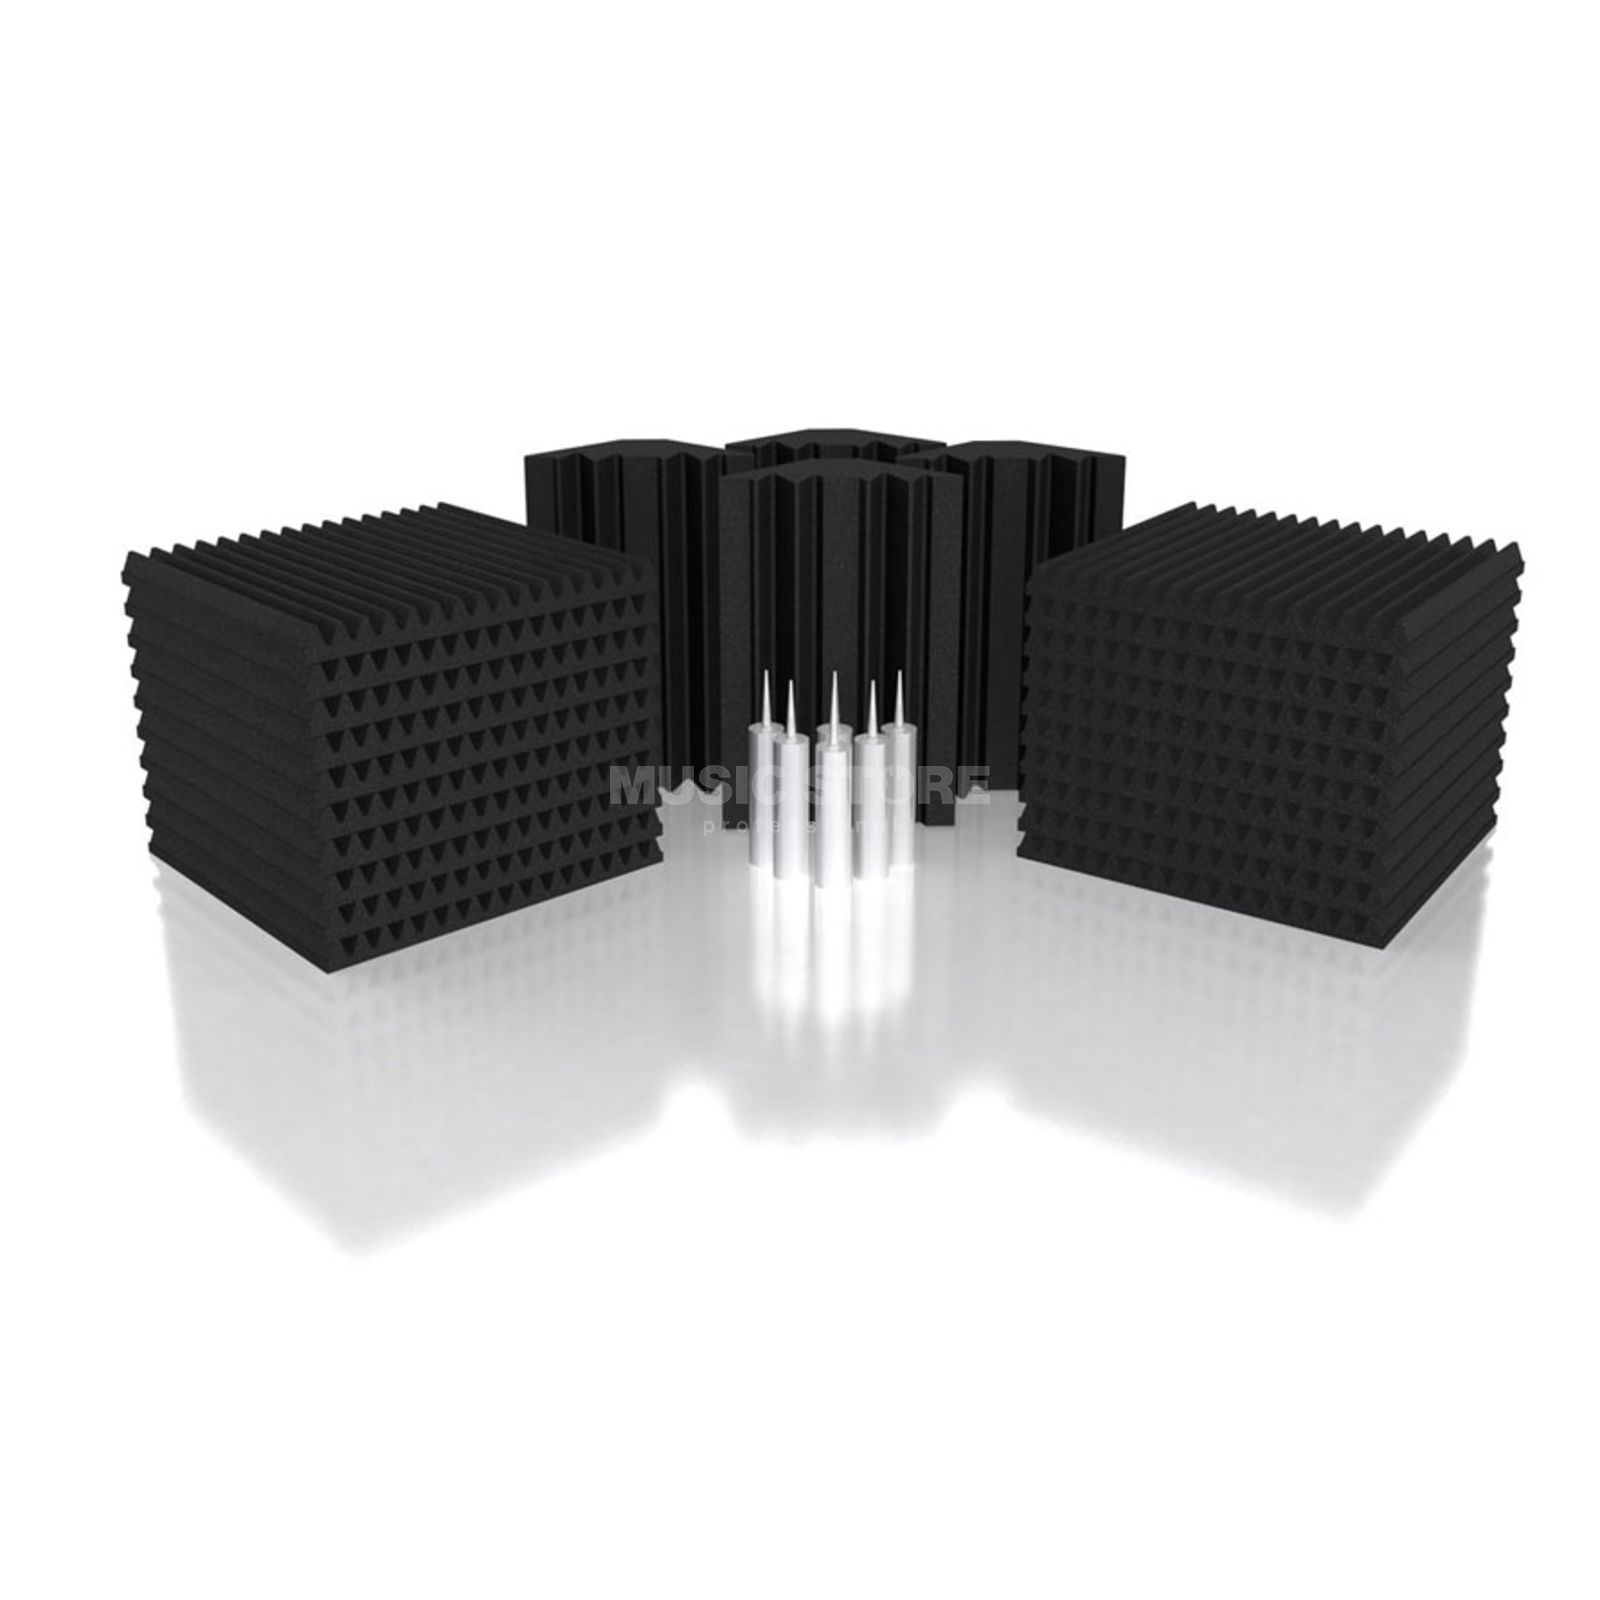 Universal Acoustics Mercury-3 Room Kit 26-piece, 7.2m², anthracite Produktbillede